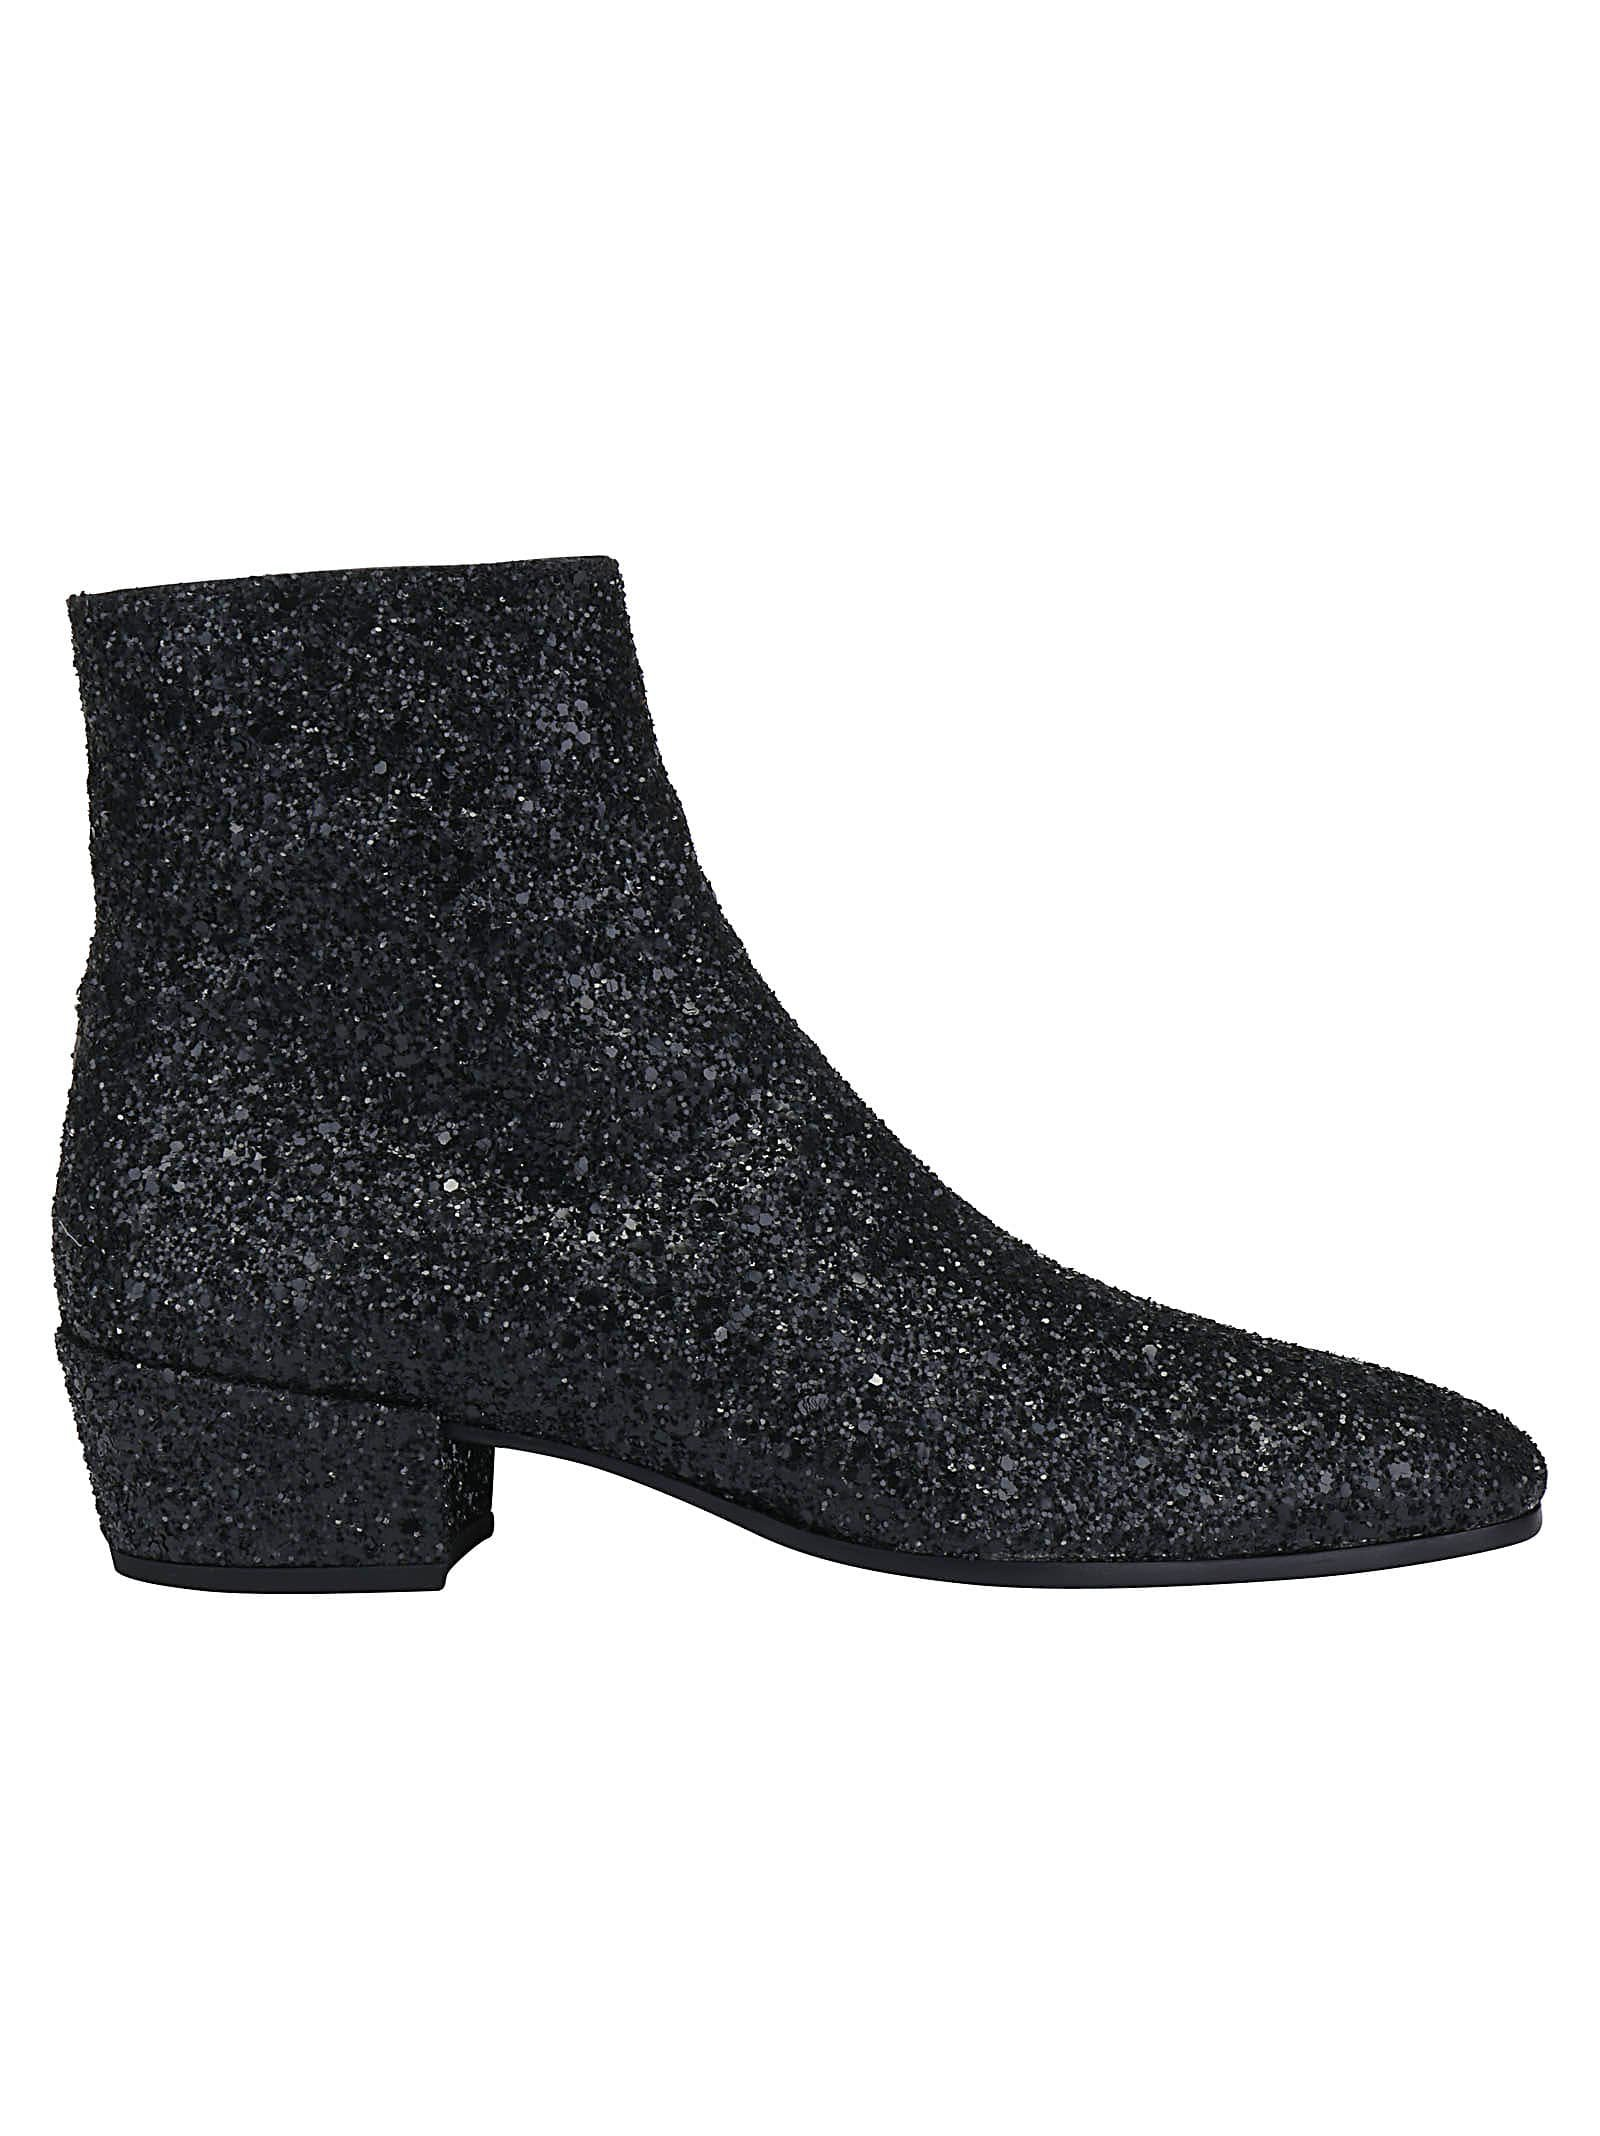 Saint Laurent Caleb Boots